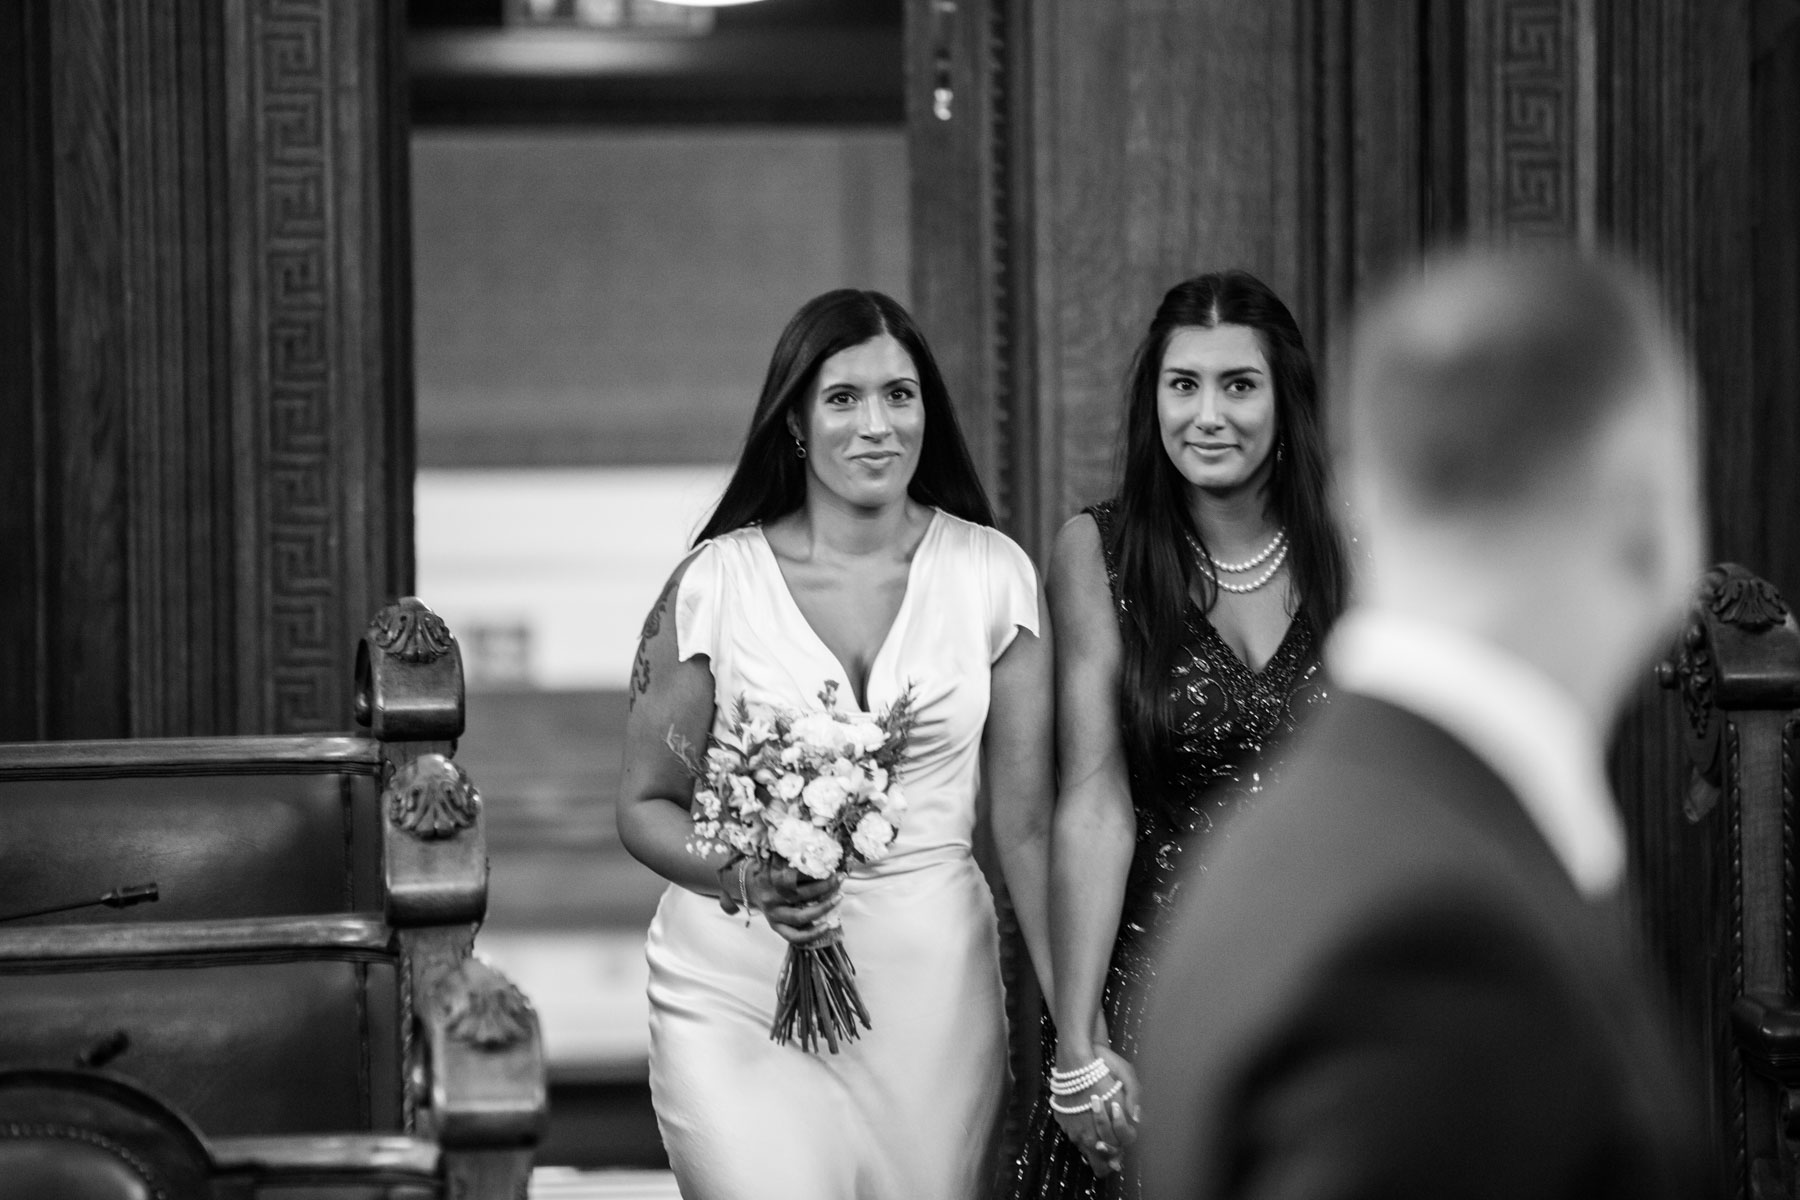 London Wedding Photography by Richard Murgatroyd